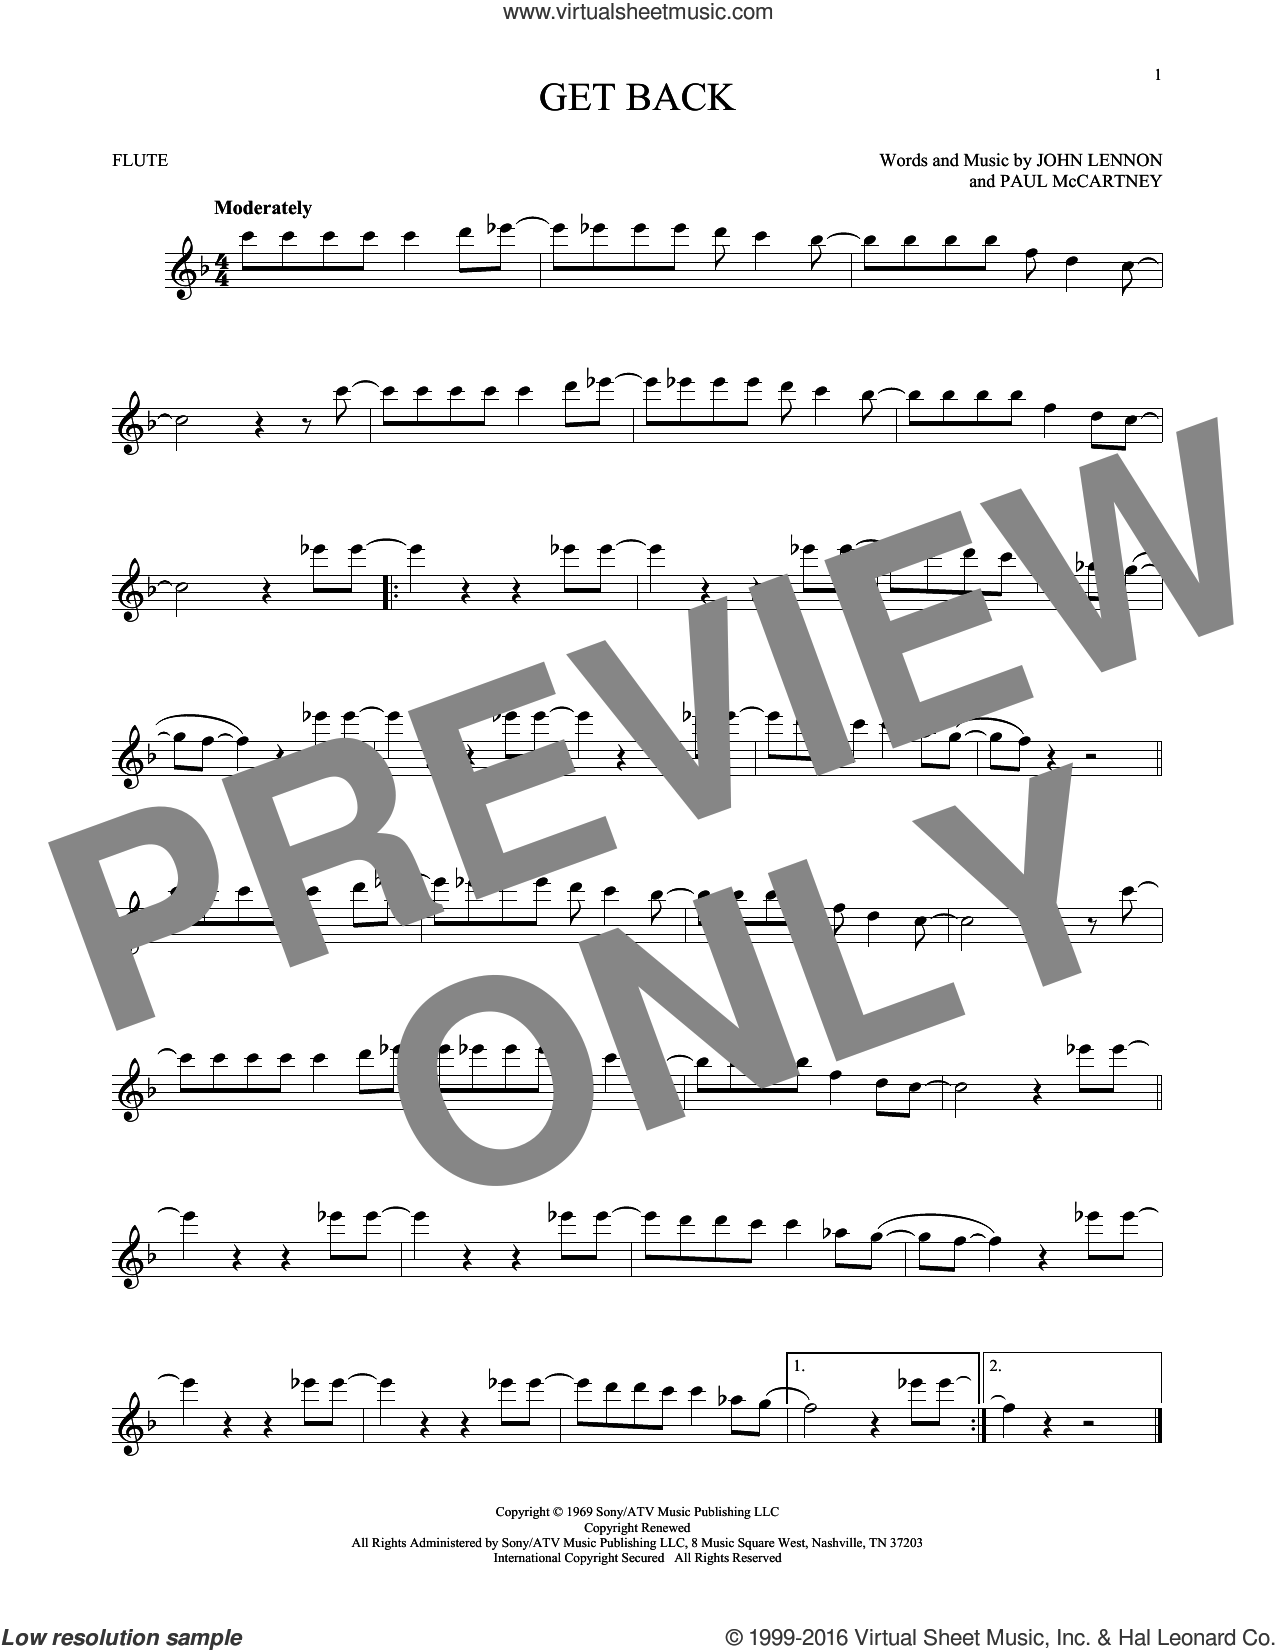 Get Back sheet music for flute solo by The Beatles, John Lennon and Paul McCartney. Score Image Preview.